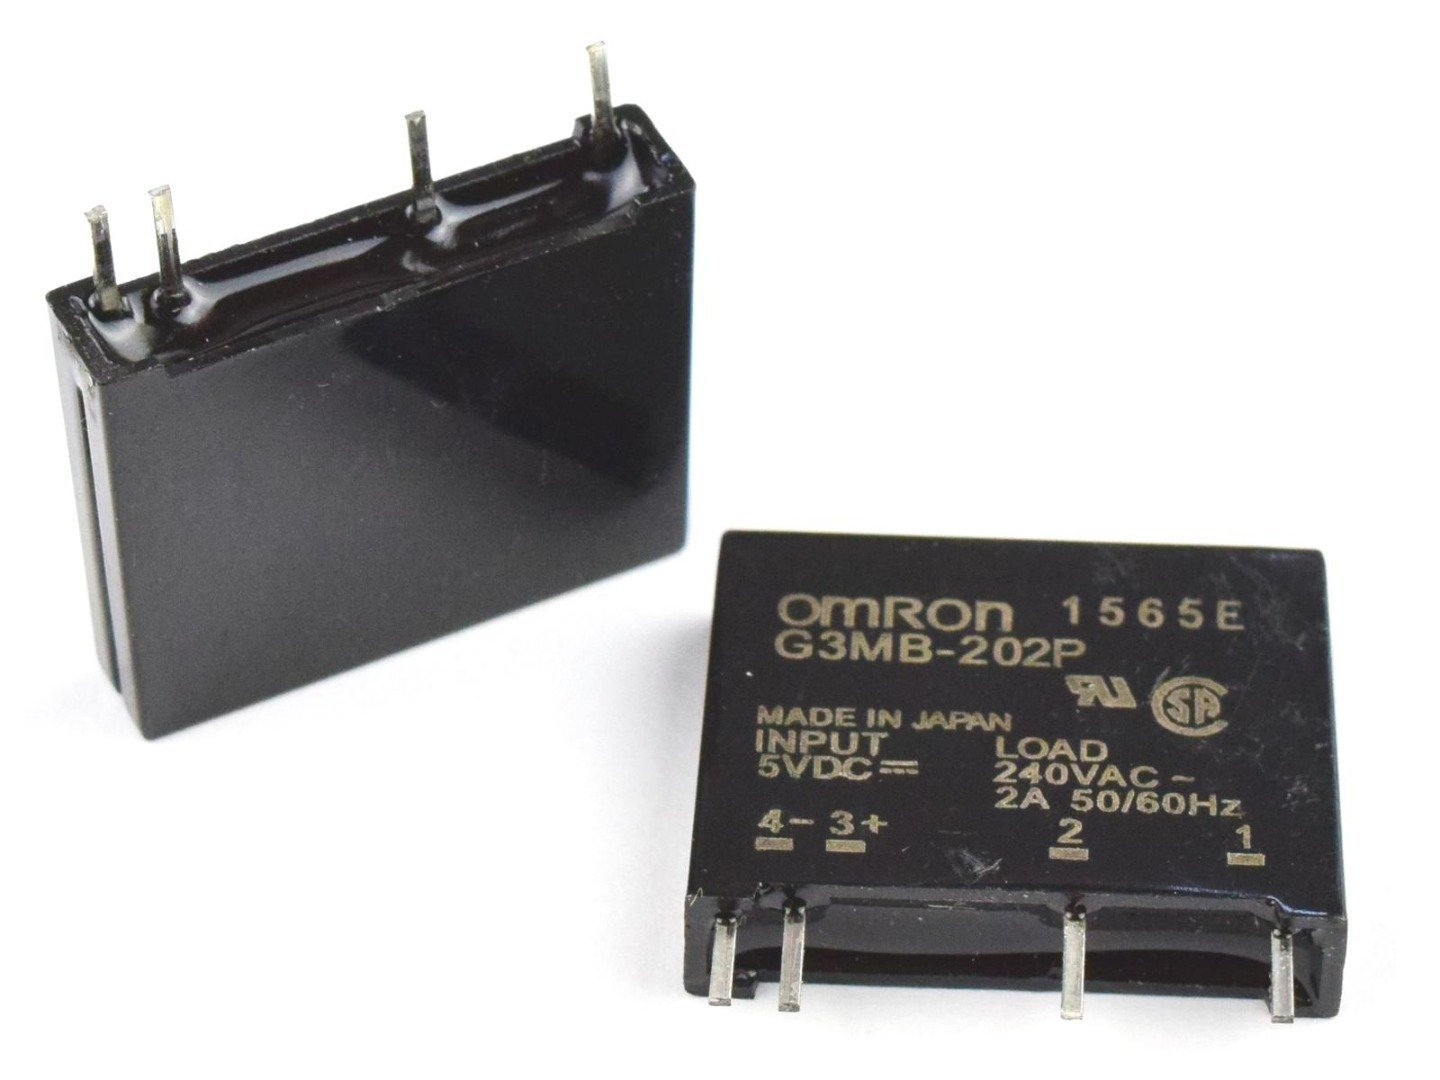 2 x SSR Solid-State-Relay G3MB-202P 250VAC – 2A for 5V control voltage